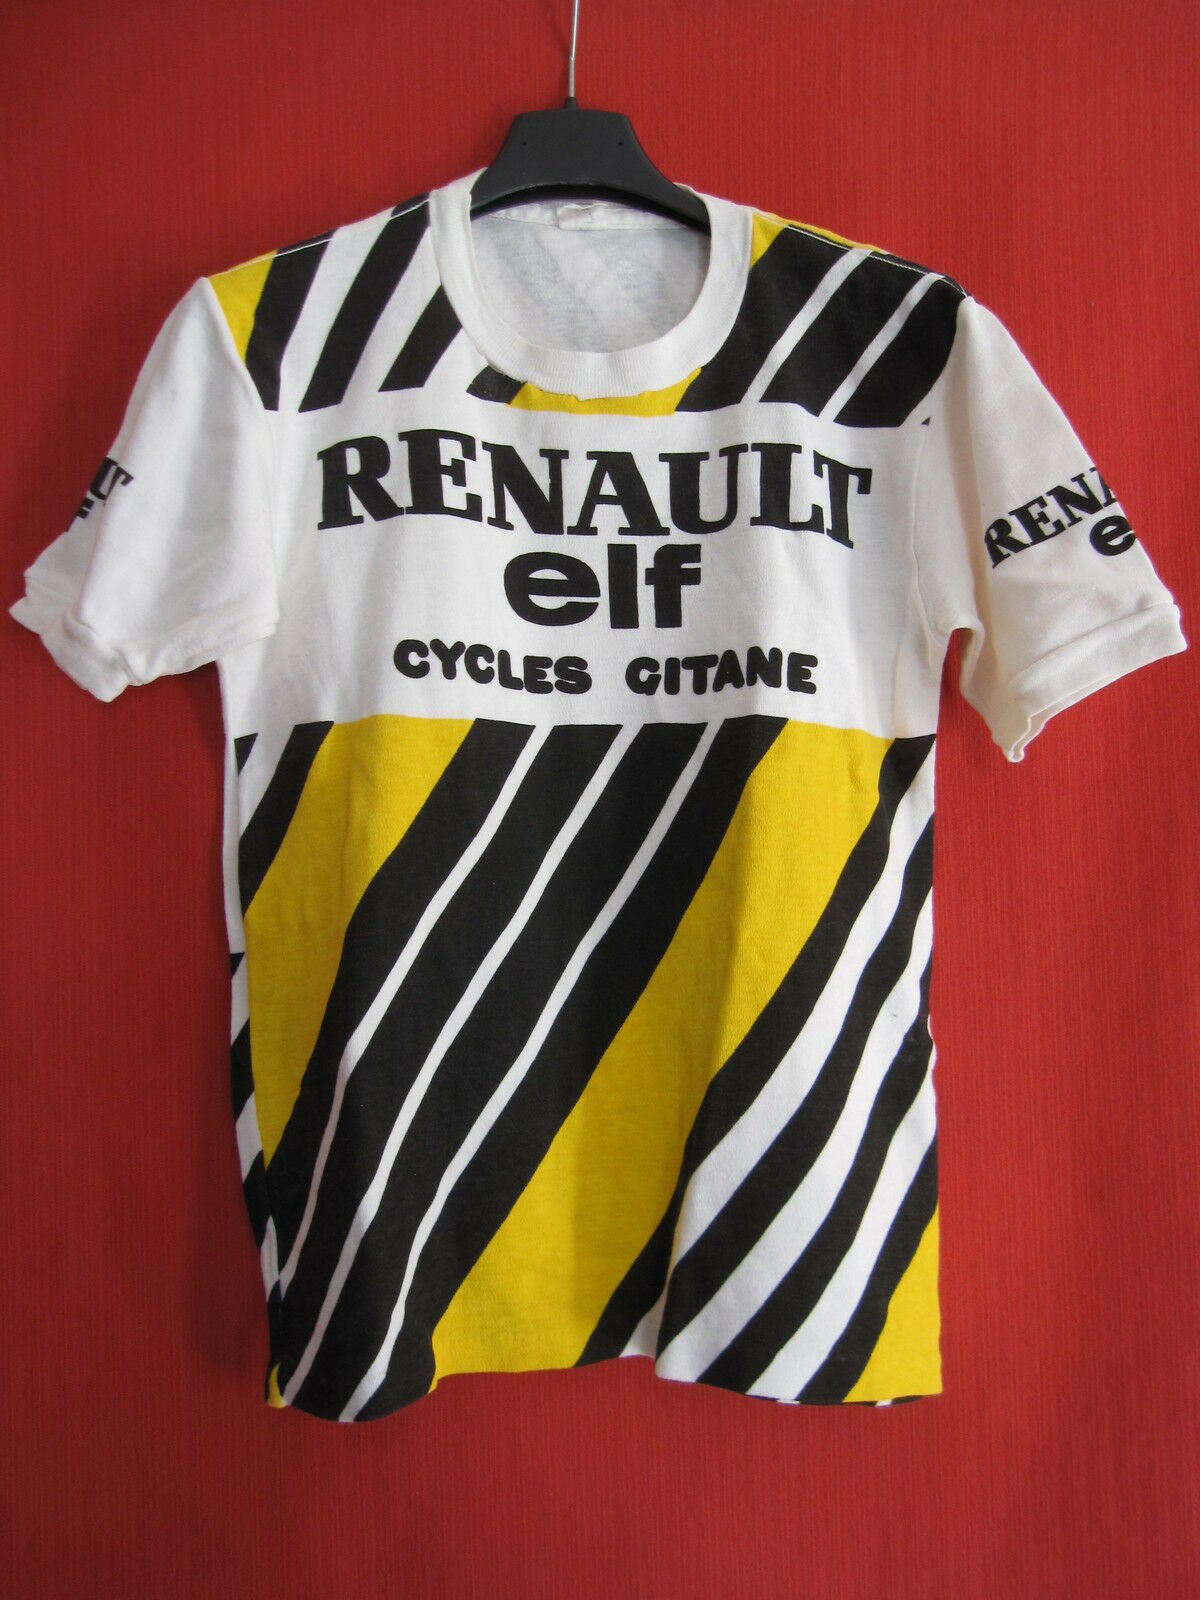 Tee Shirt de maillot cycliste RENAULT ELF cycles cycles cycles Gitanes Vintage 80'S Vélo TBE f6a77f